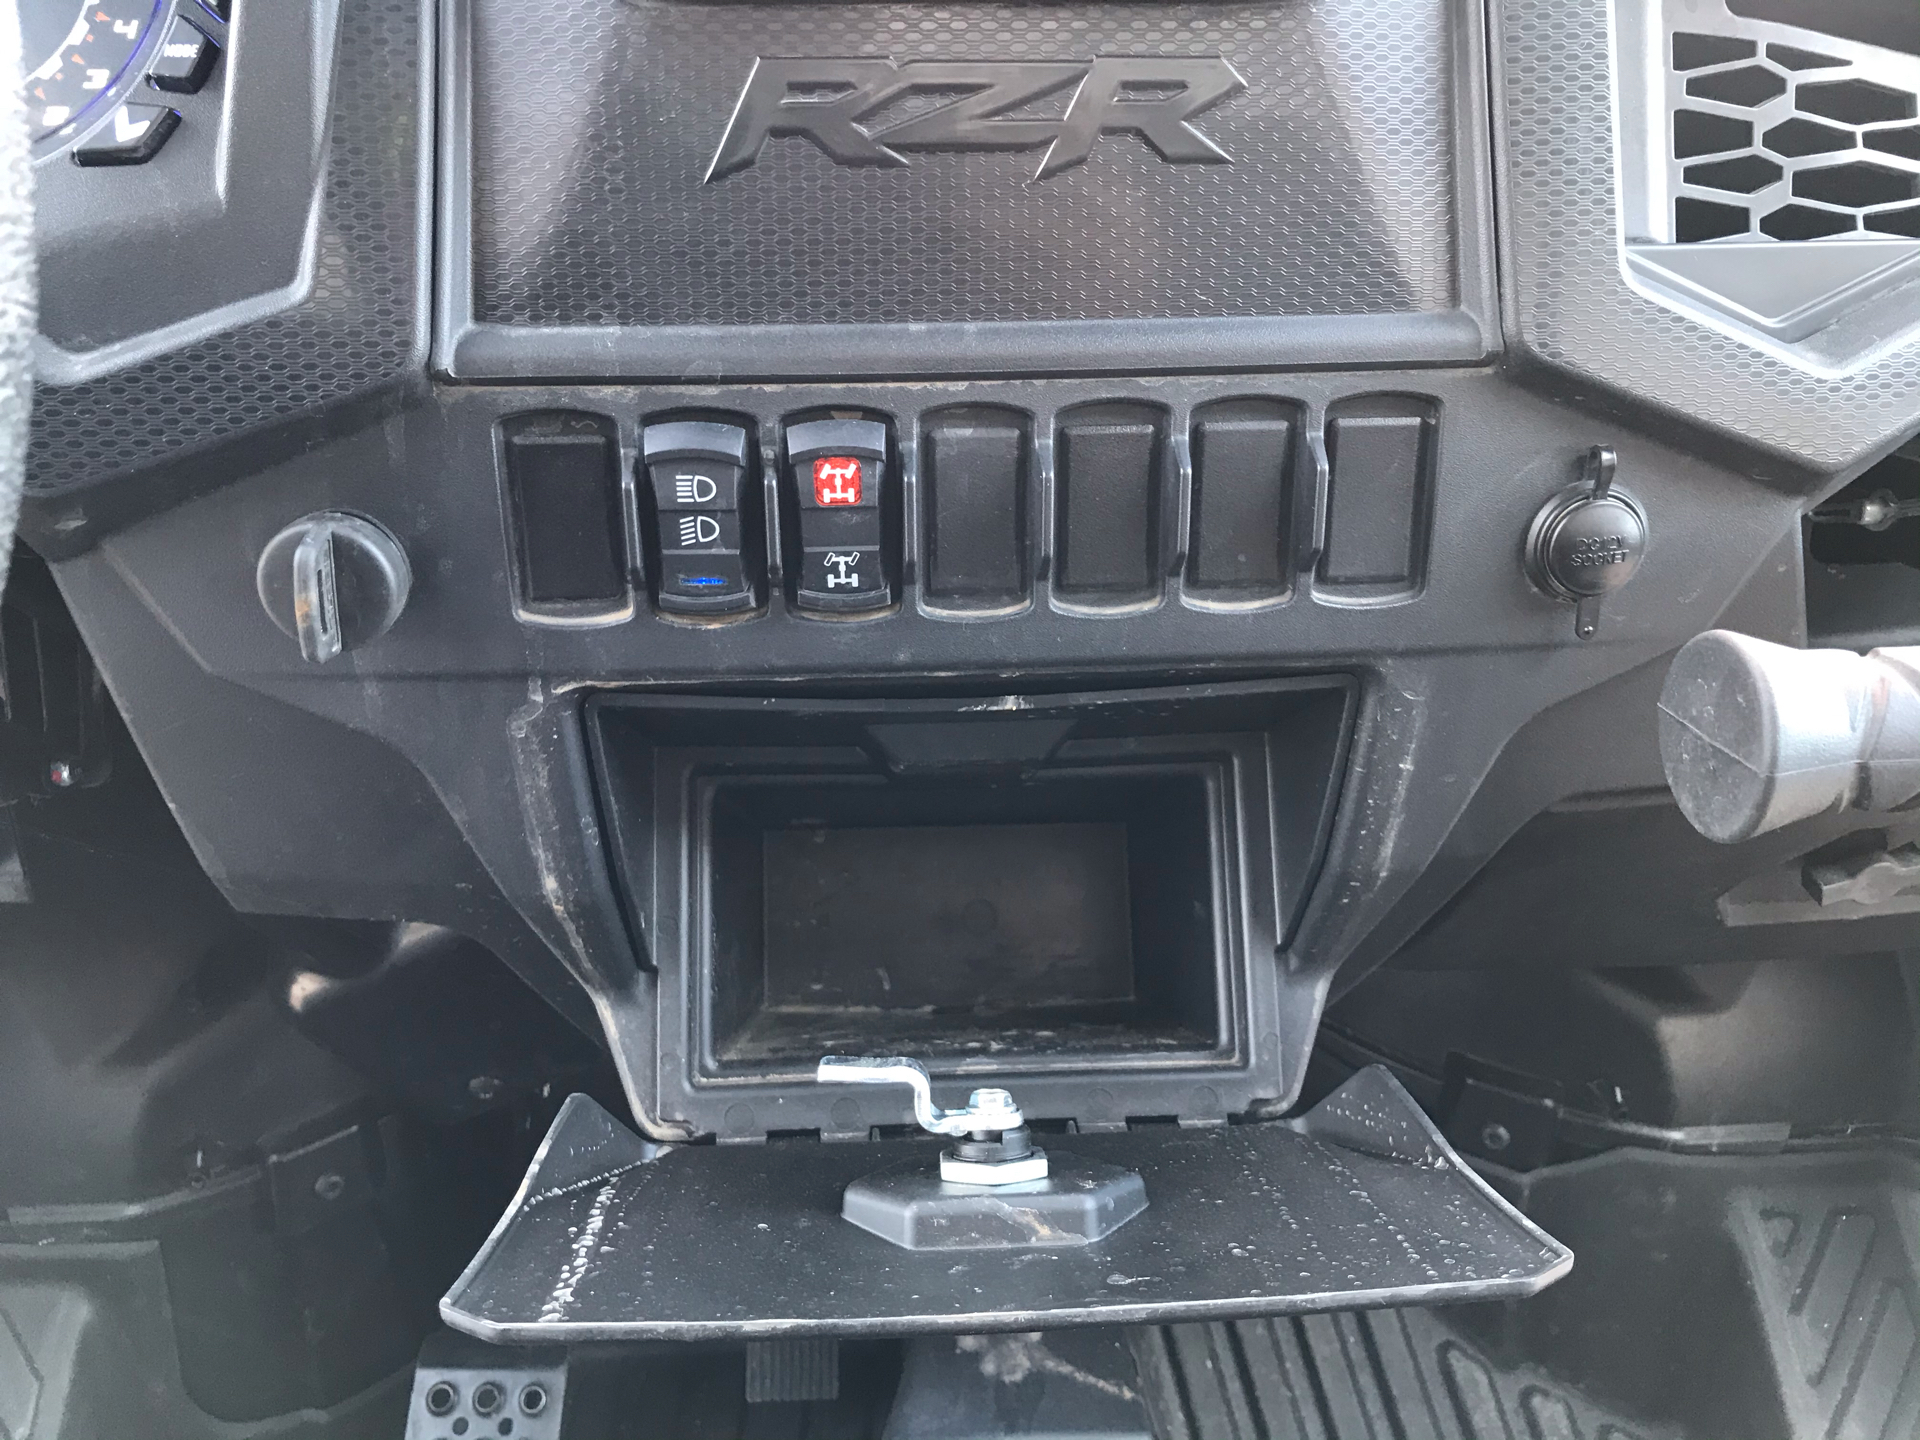 2019 Polaris RZR XP Turbo in Amarillo, Texas - Photo 10